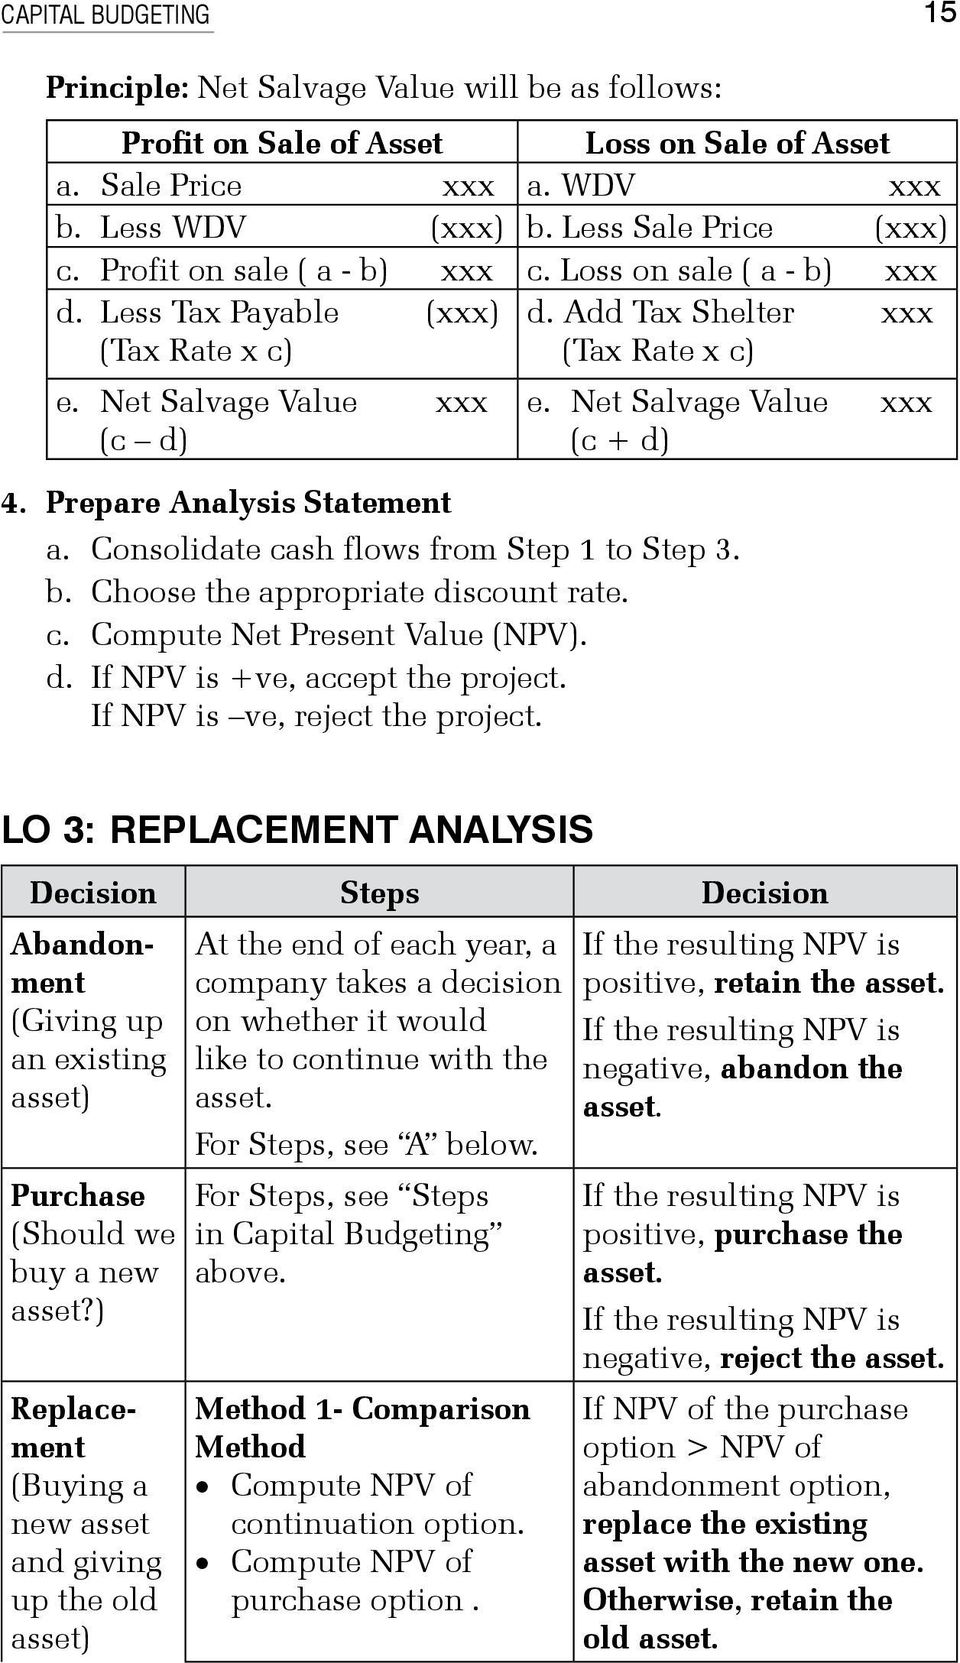 Net Salvage Value xxx (c + d) 4. Prepare Analysis Statement a. Consolidate cash flows from Step 1 to Step 3. b. Choose the appropriate discount rate. c. Compute Net Present Value (NPV). d. If NPV is +ve, accept the project.